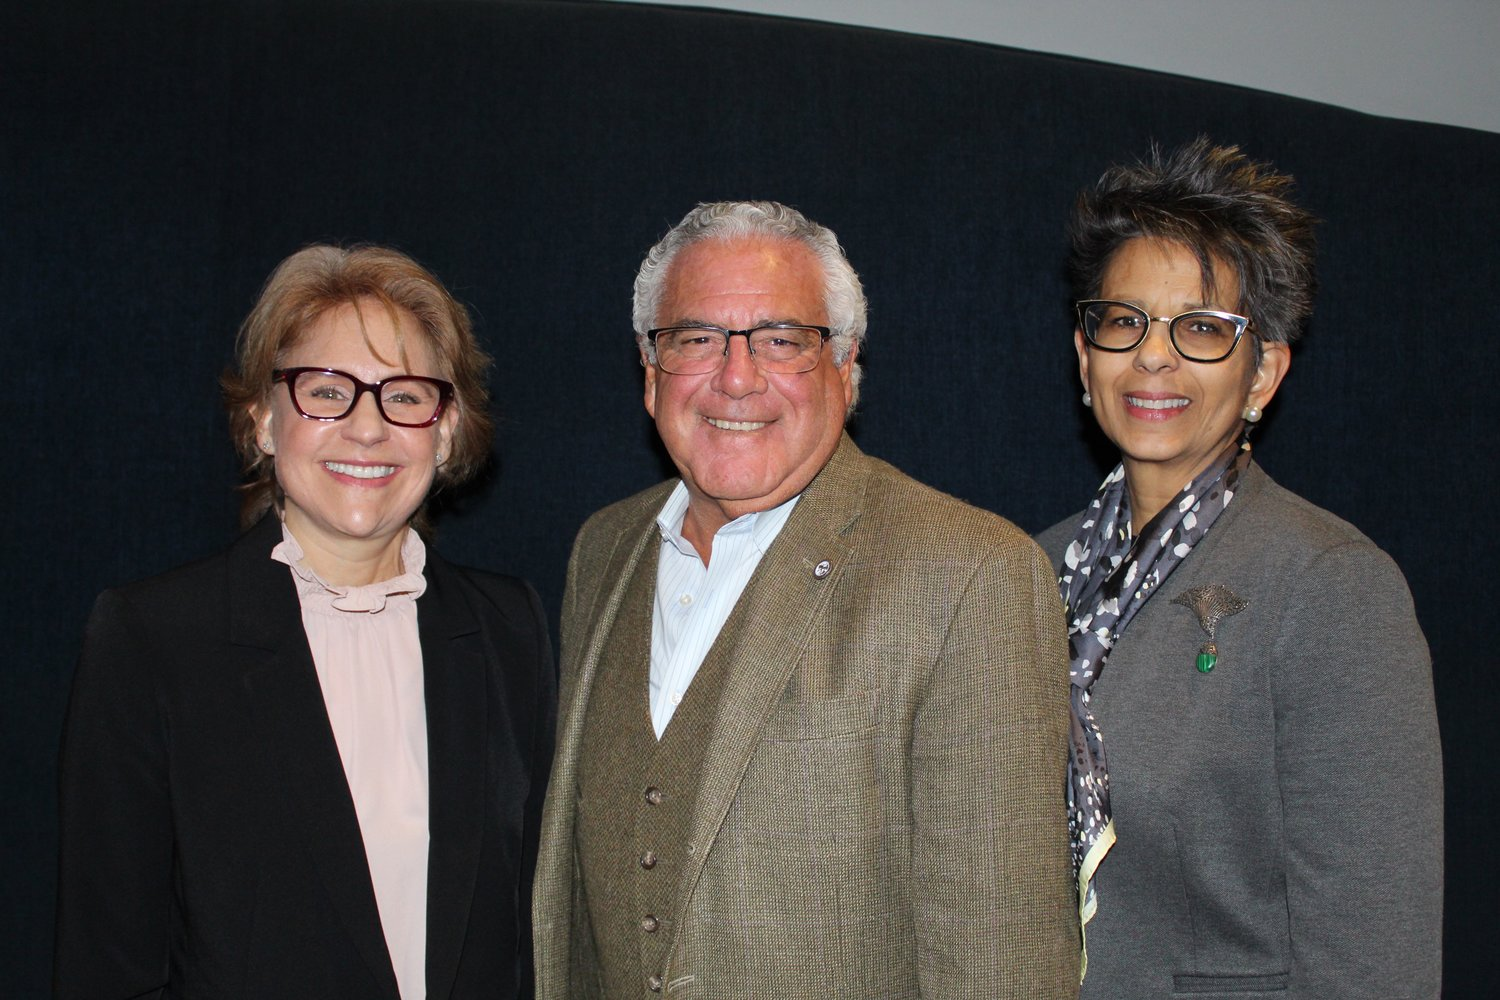 Trustee Dina Epstein, left, Mayor Edward Lieberman and Trustee Elena Villafane will again serve on the Sea Cliff Village Board of Trustees.